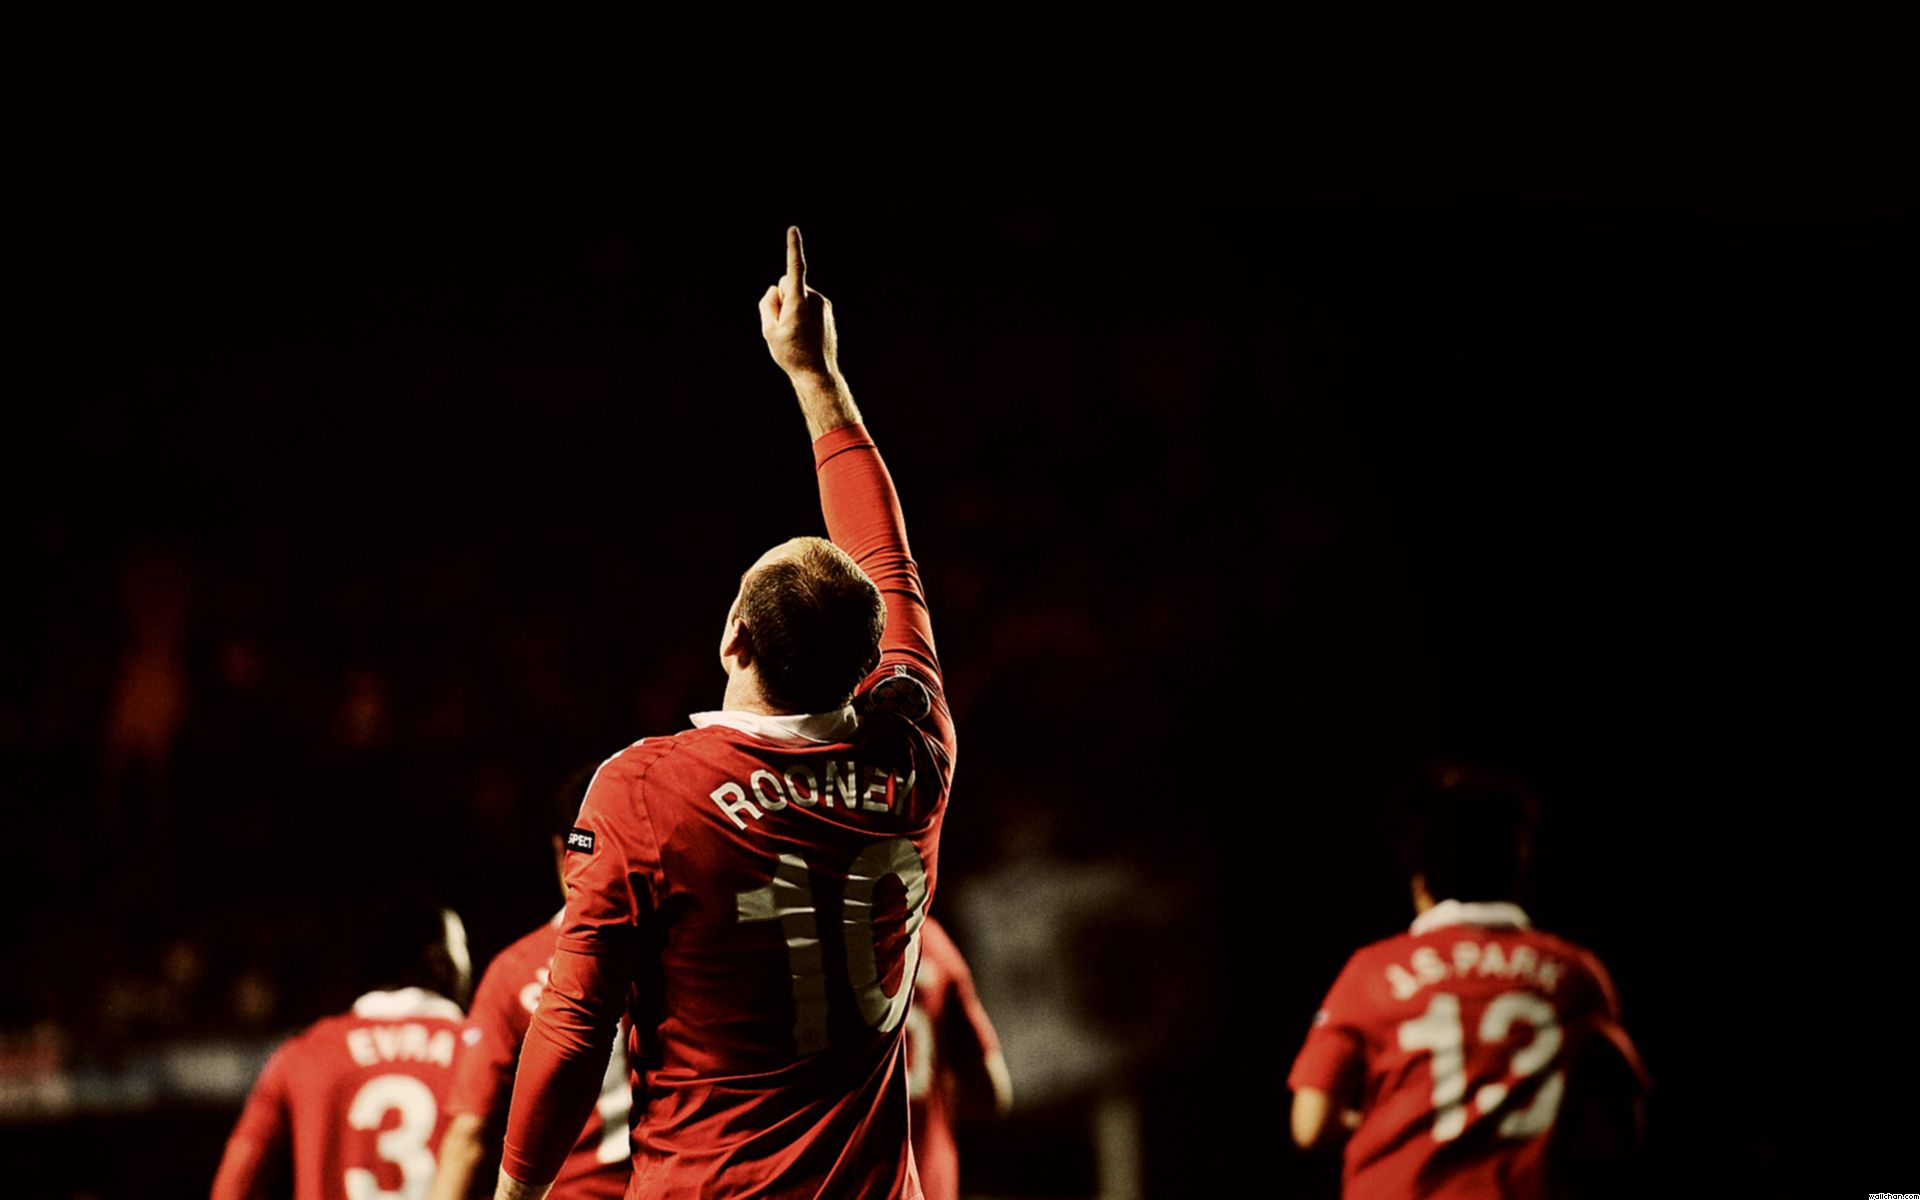 List of Awesome Manchester United Wallpapers Backgrounds Manchester United. The one and only.